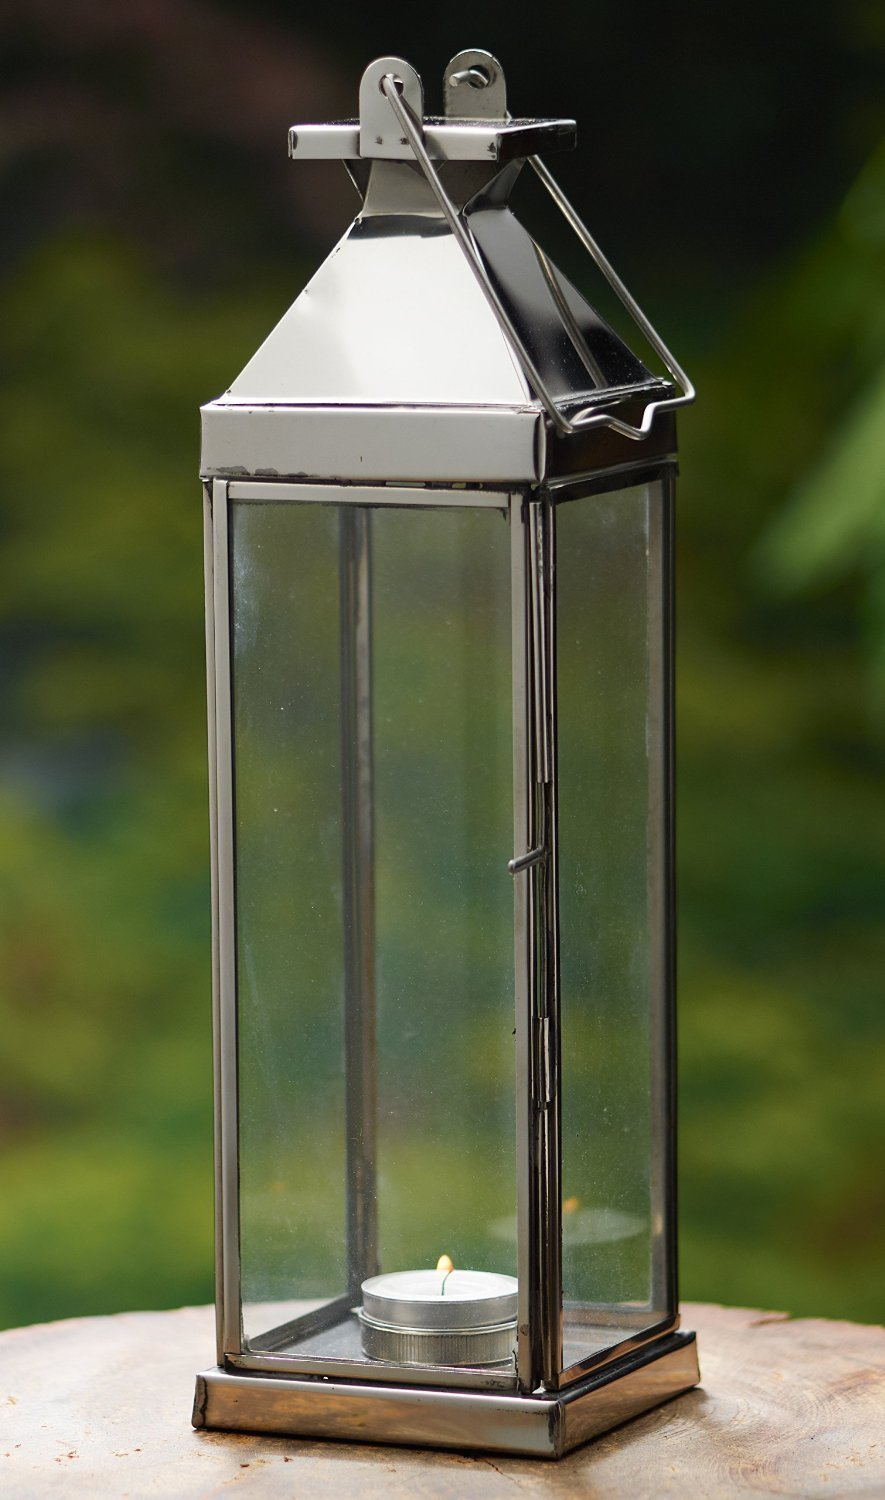 KINDWER Tall Candle Lantern, 14-Inch ihi A1187